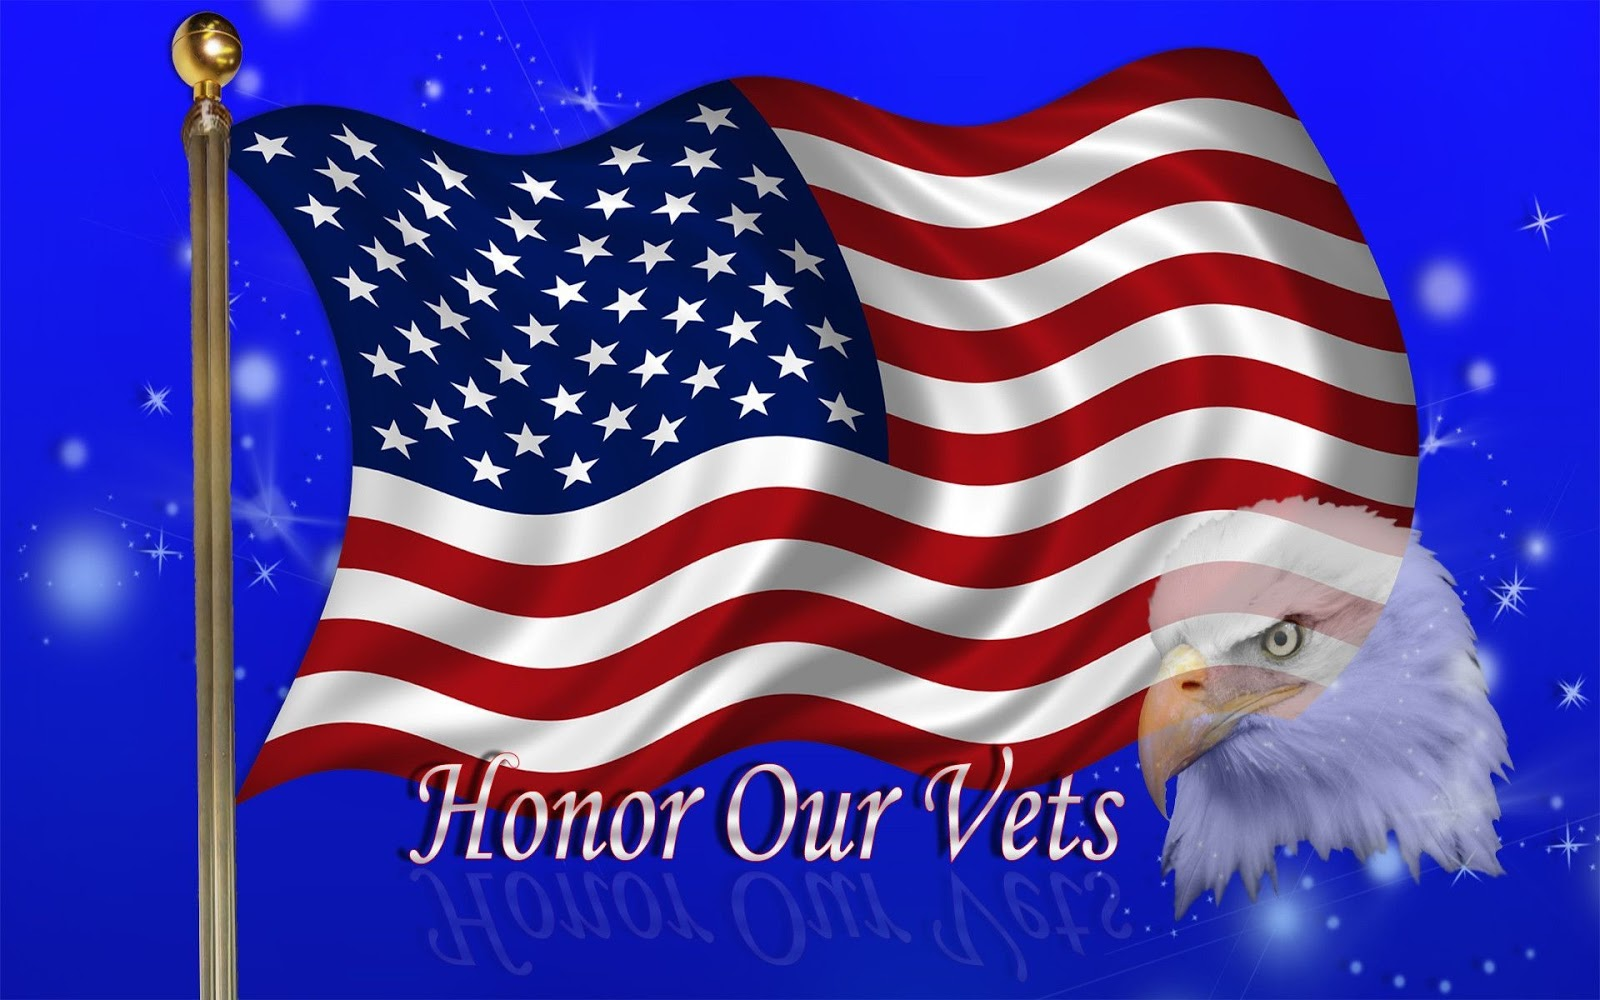 Latest memorial day 2018 pictures images wallpapers greetings memorial day 2018 pictures images wallpapers greetings cards free download m4hsunfo